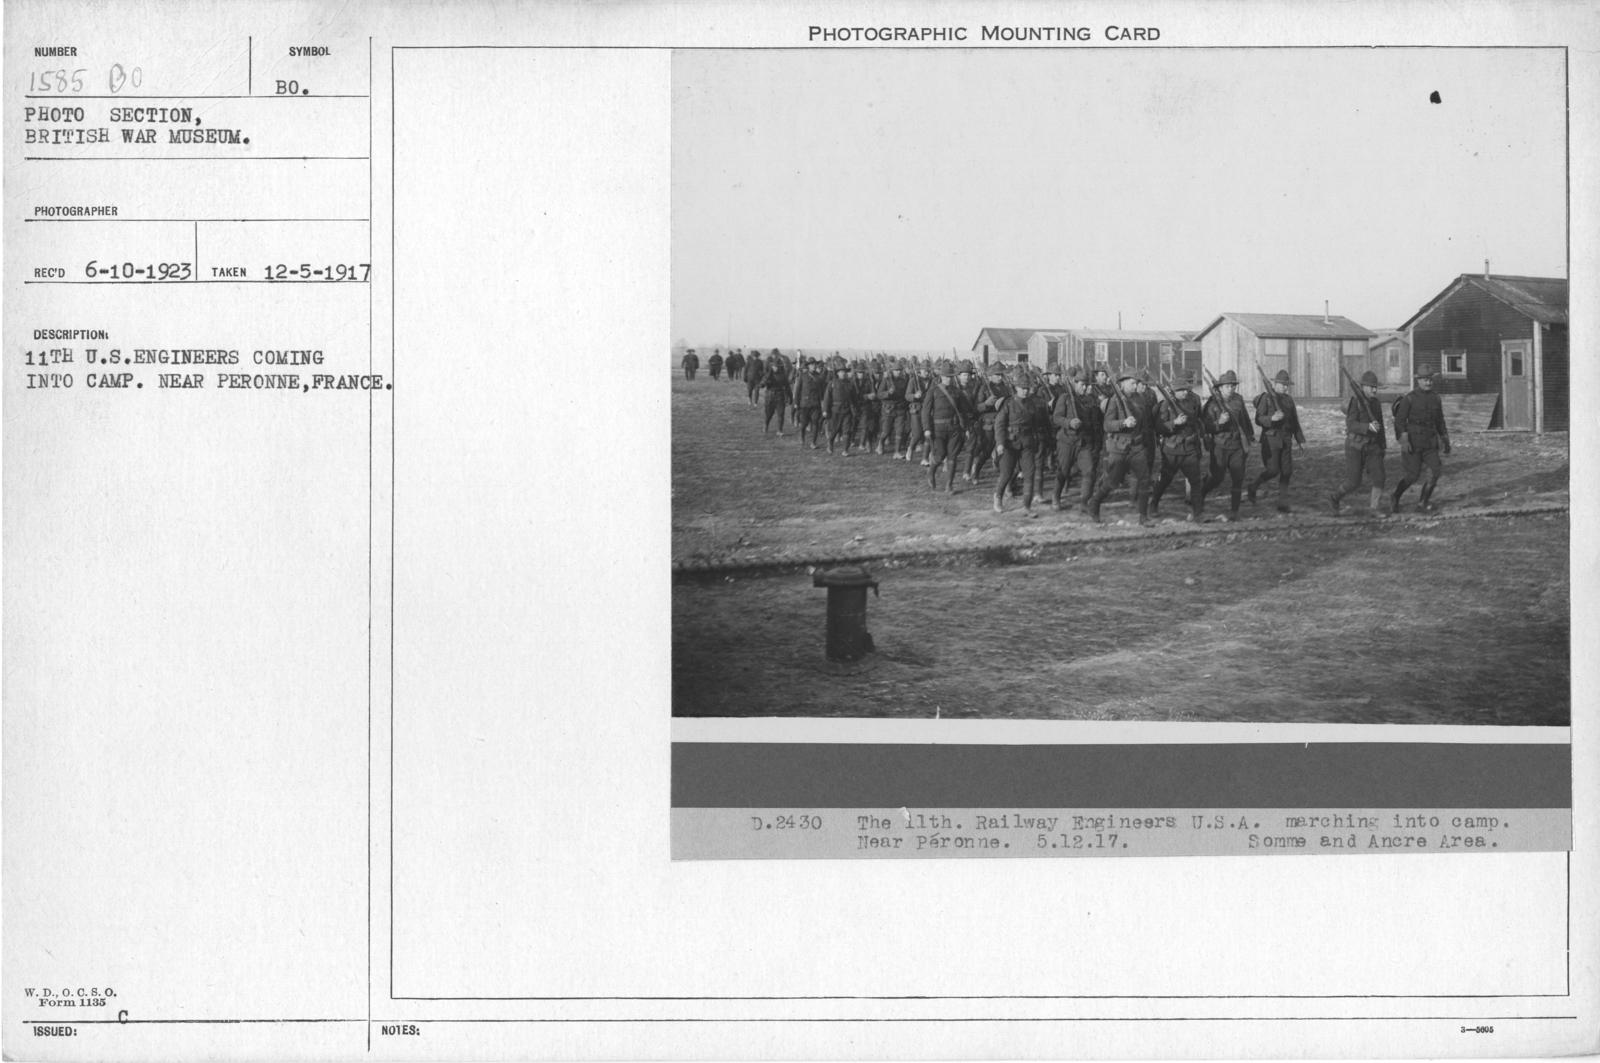 11th U.S. Engineers coming into camp. Near Peronne, France. 12-5-1917